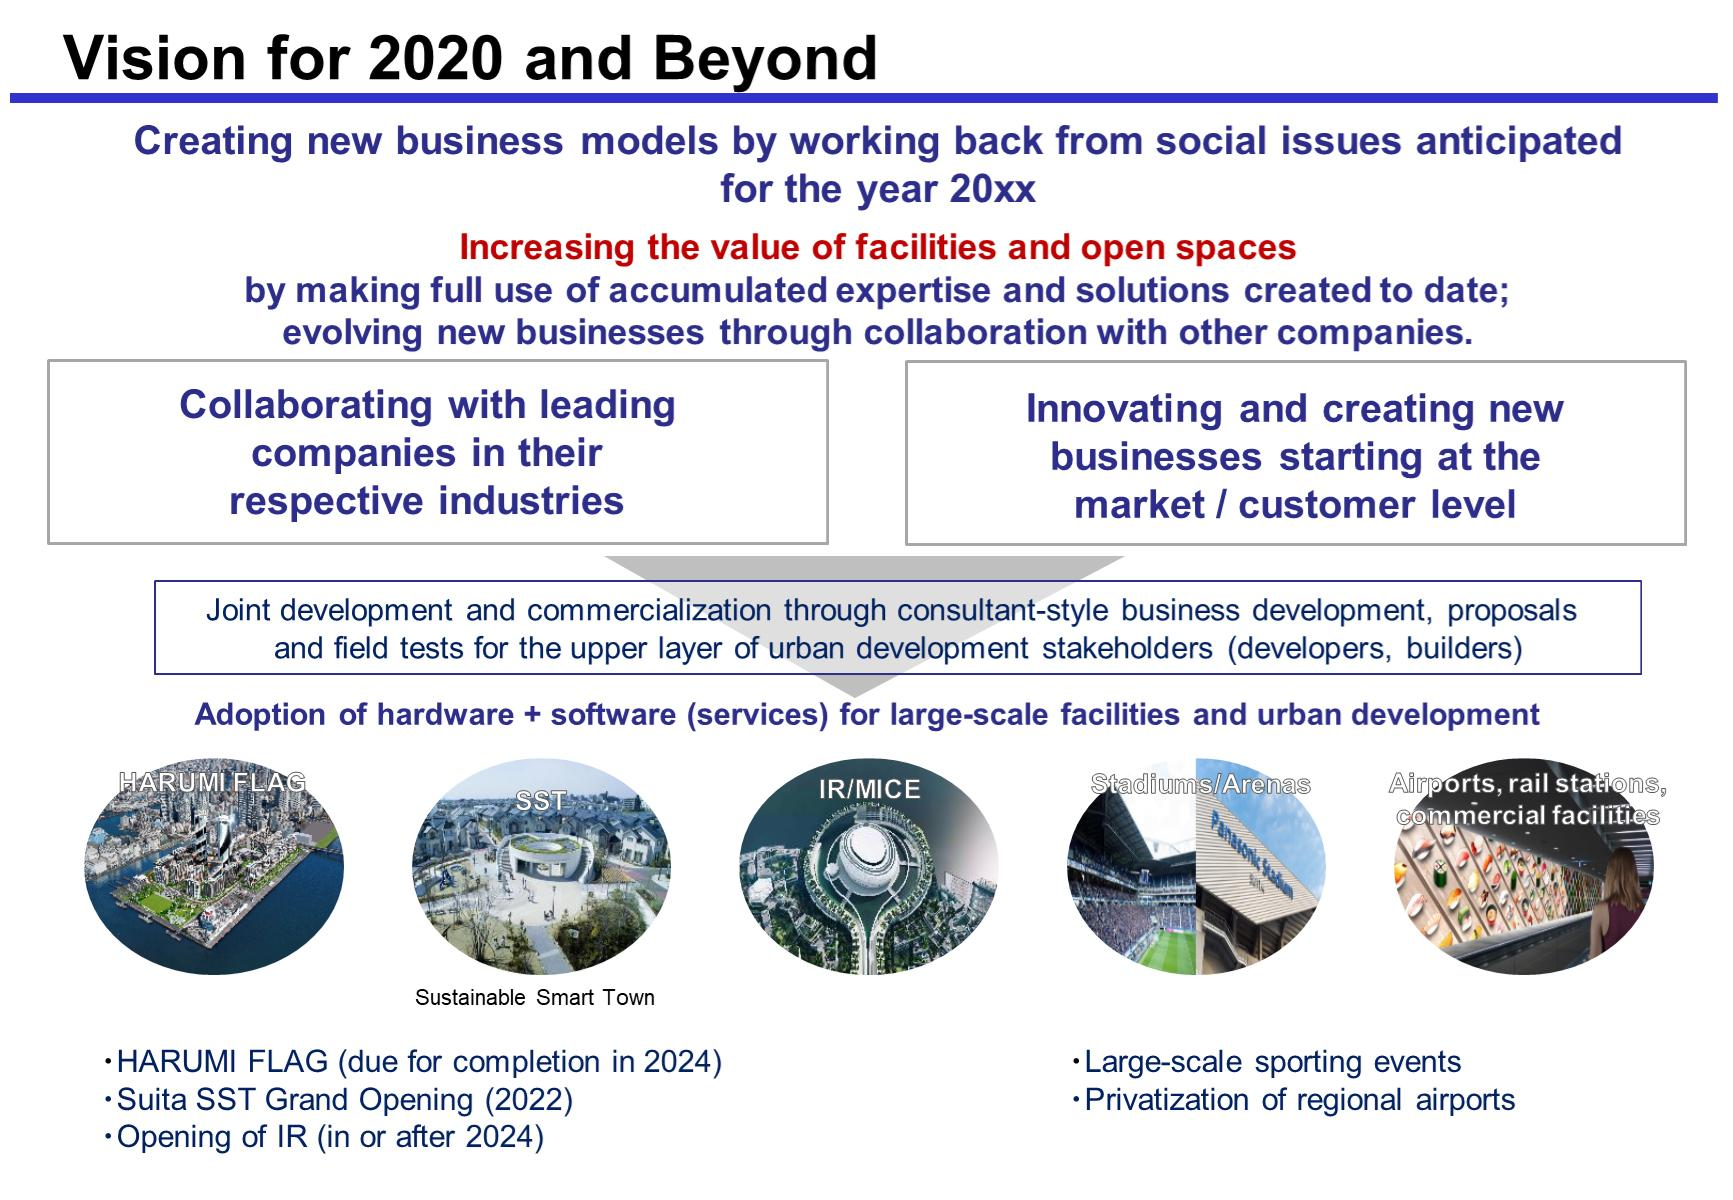 image: Vision for 2020 and Beyond